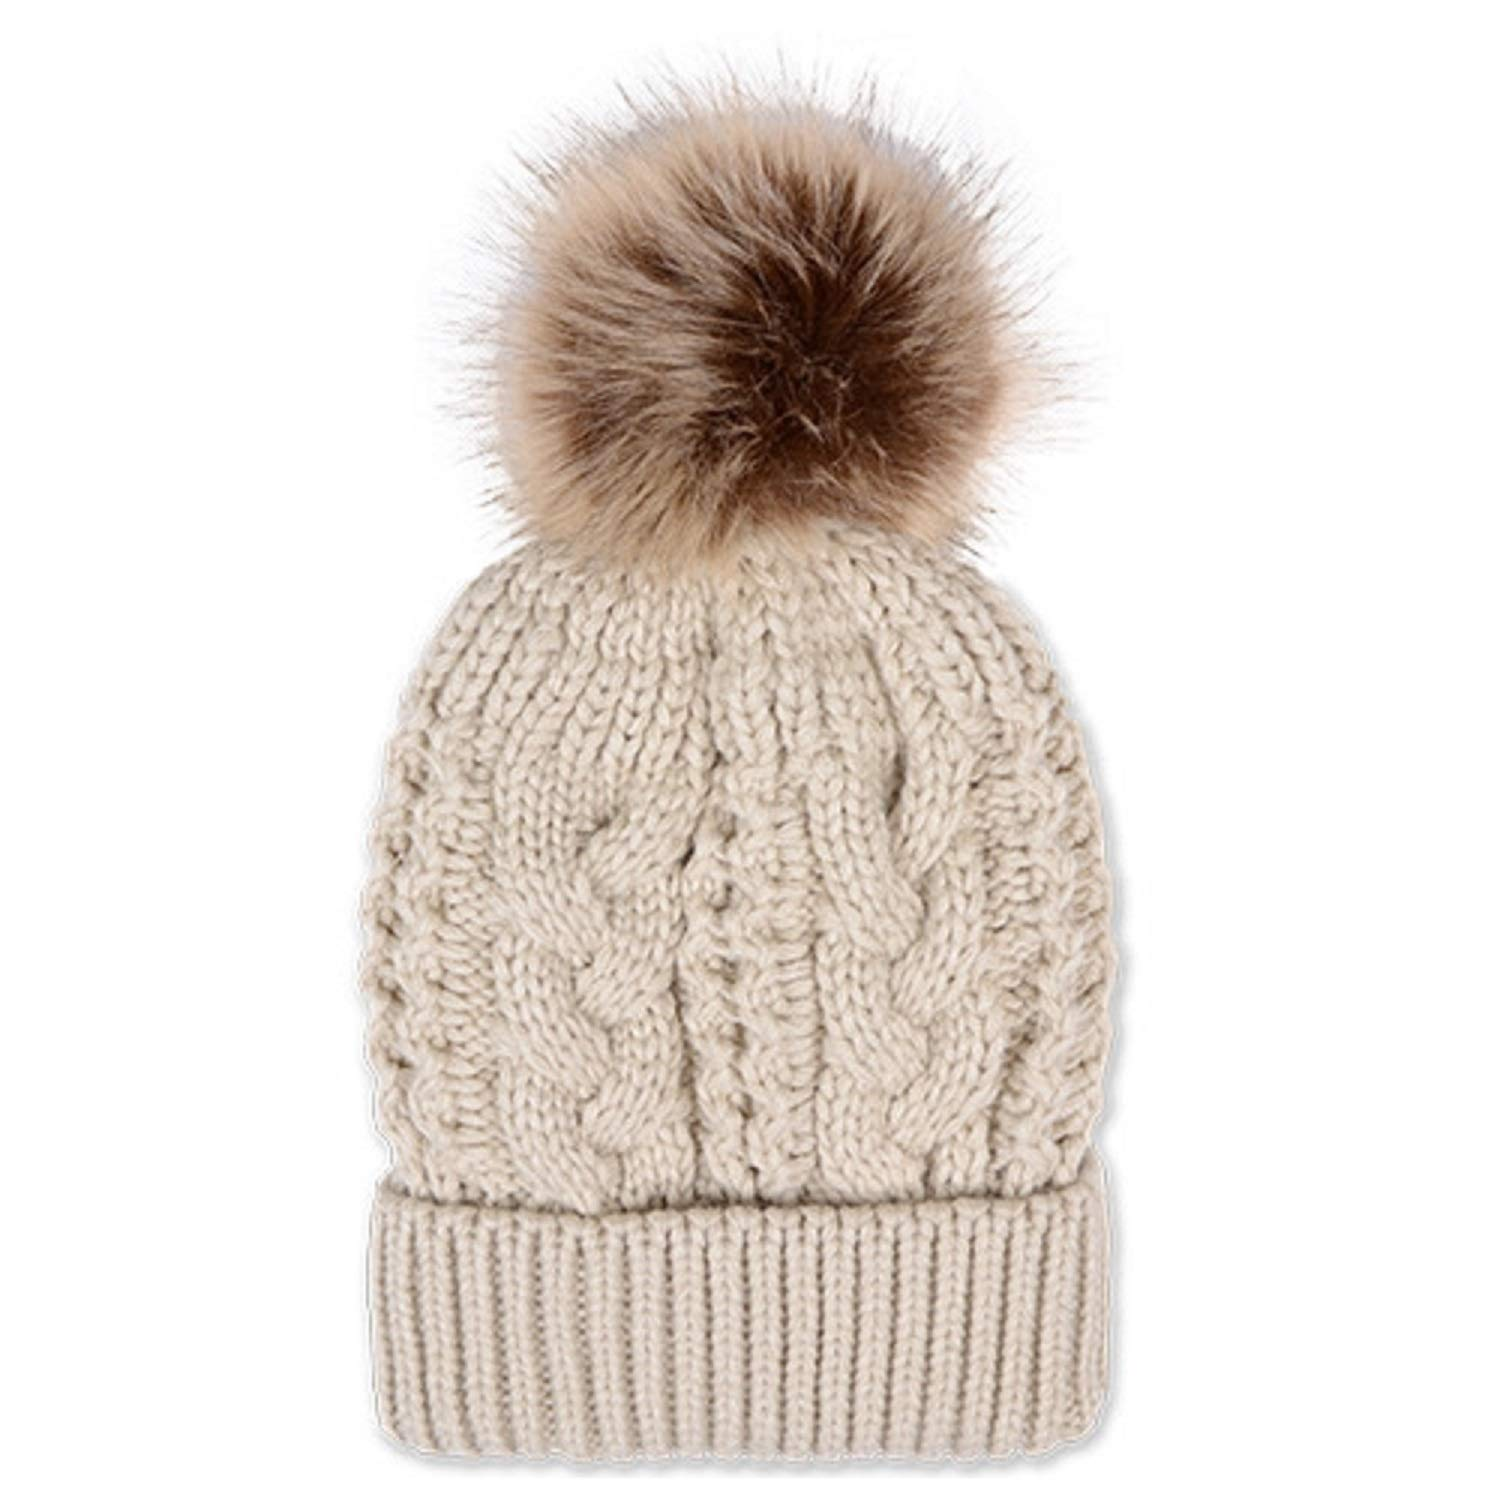 513d3bdfda0adc Amazon.com: Treenewbid Pompoms Beanie Hat Women Thick Cable Knit Beanie  Soft Faux Fur Pom Cap (Beige): Clothing